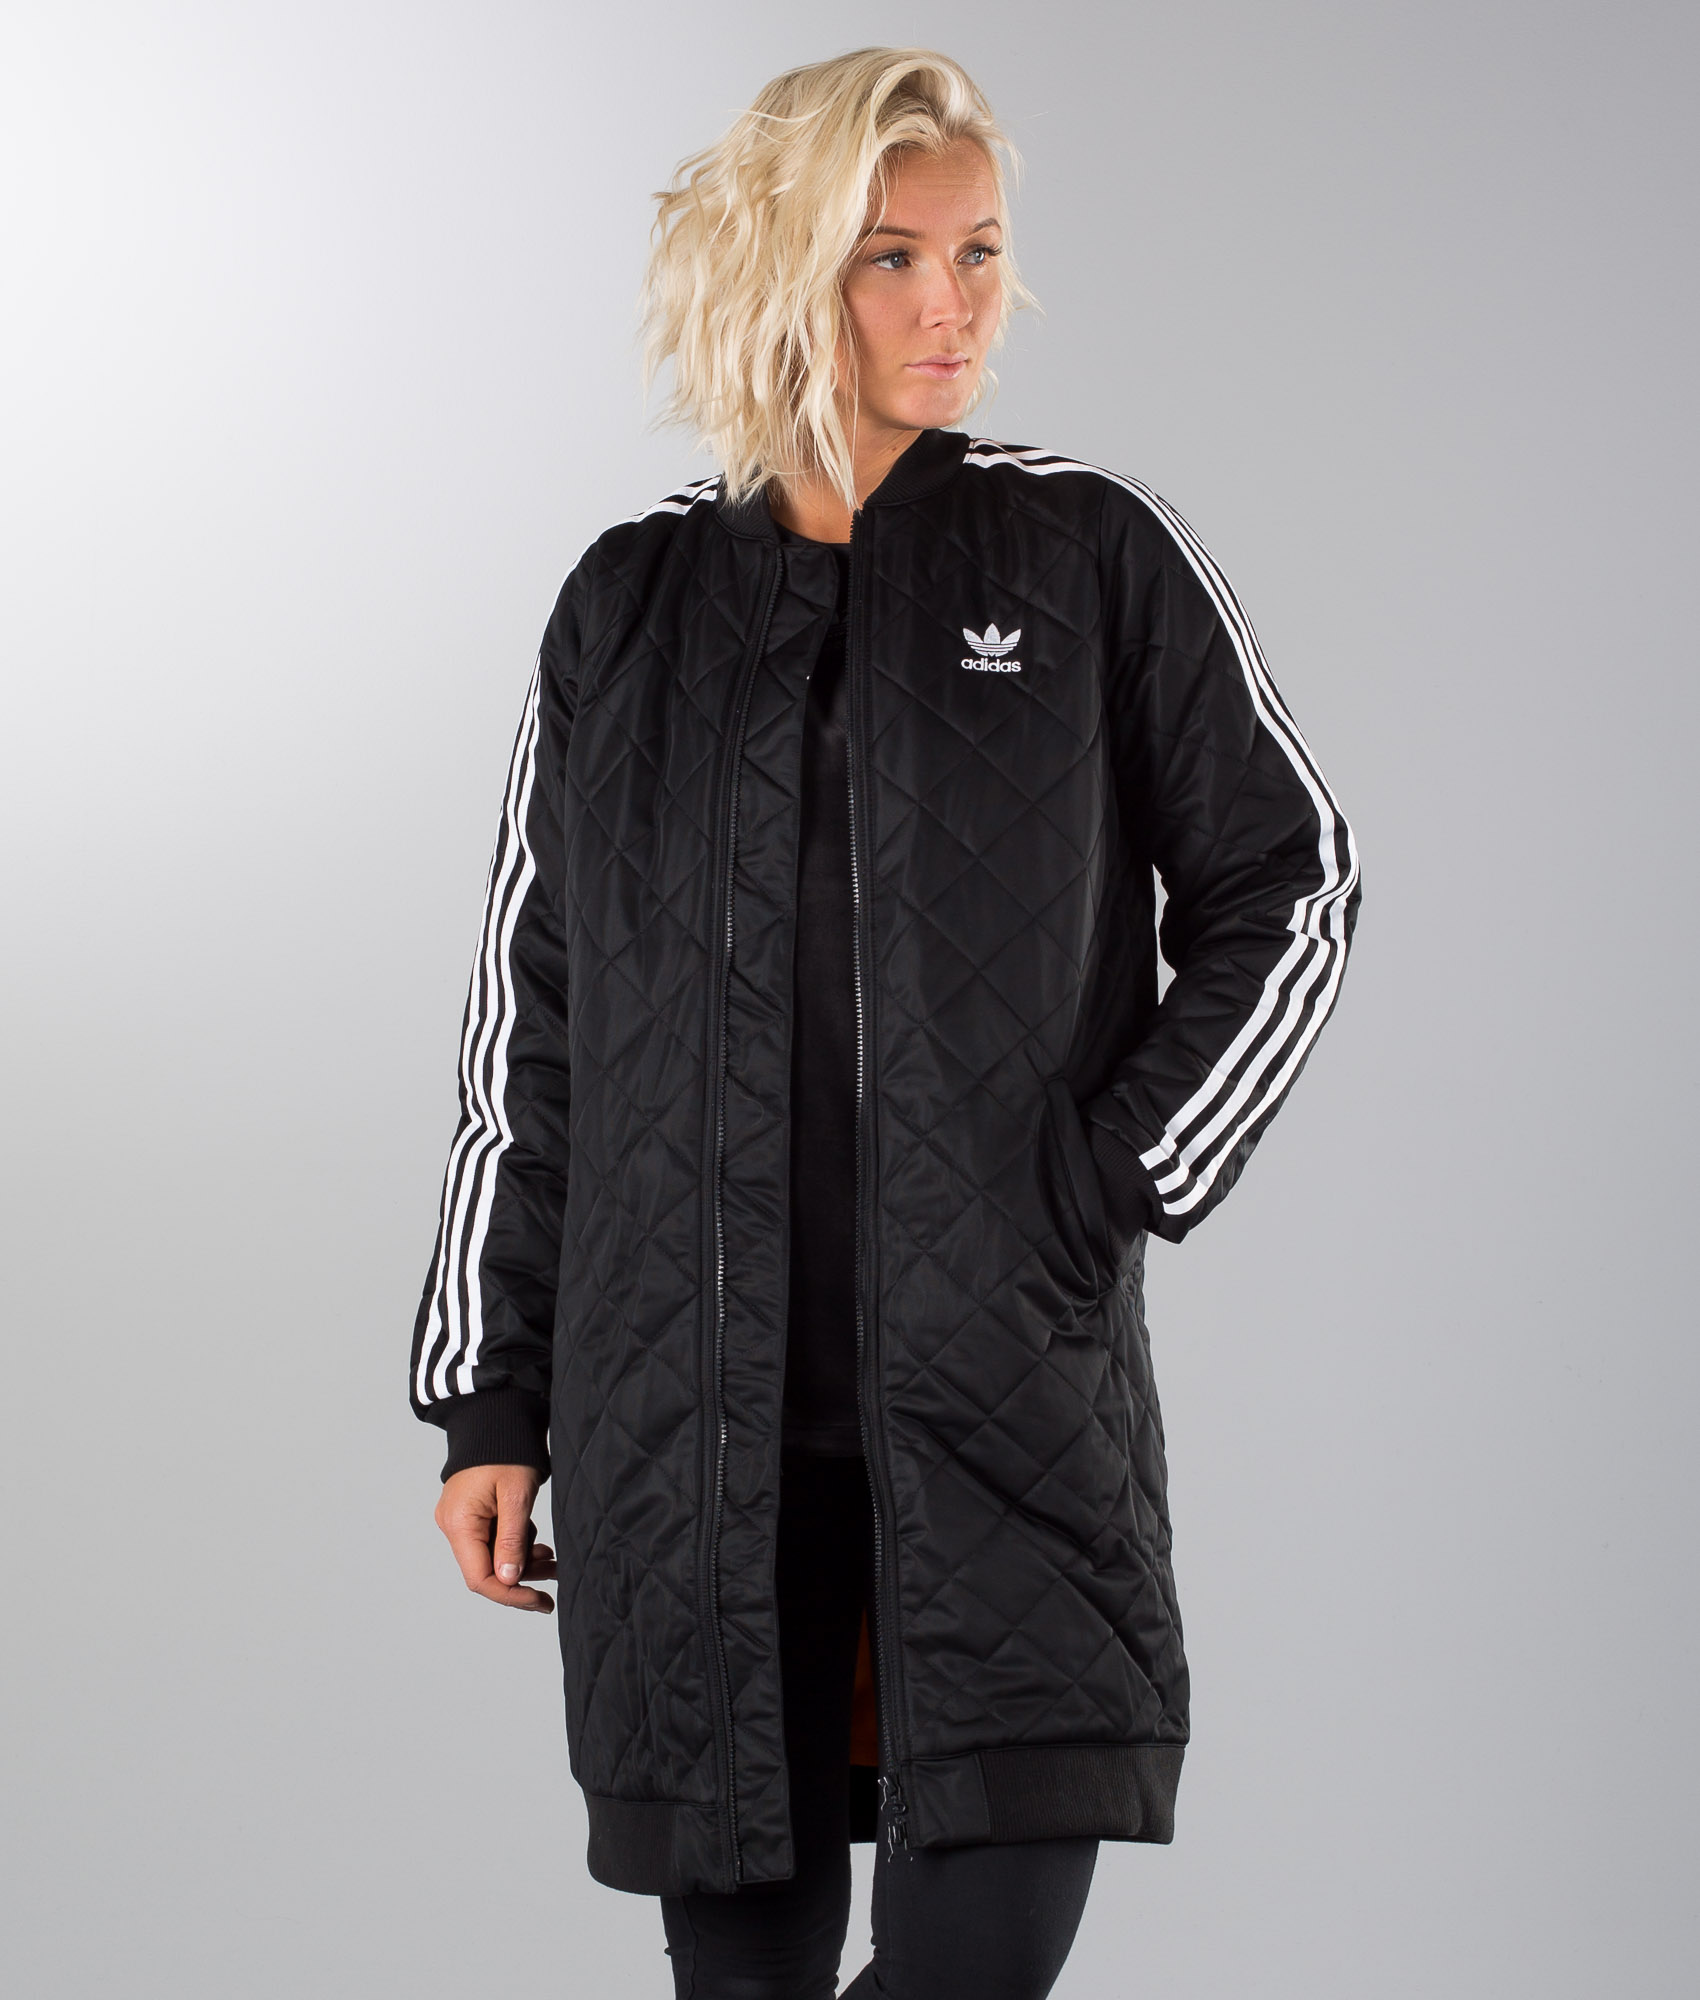 Adidas Originals jakke